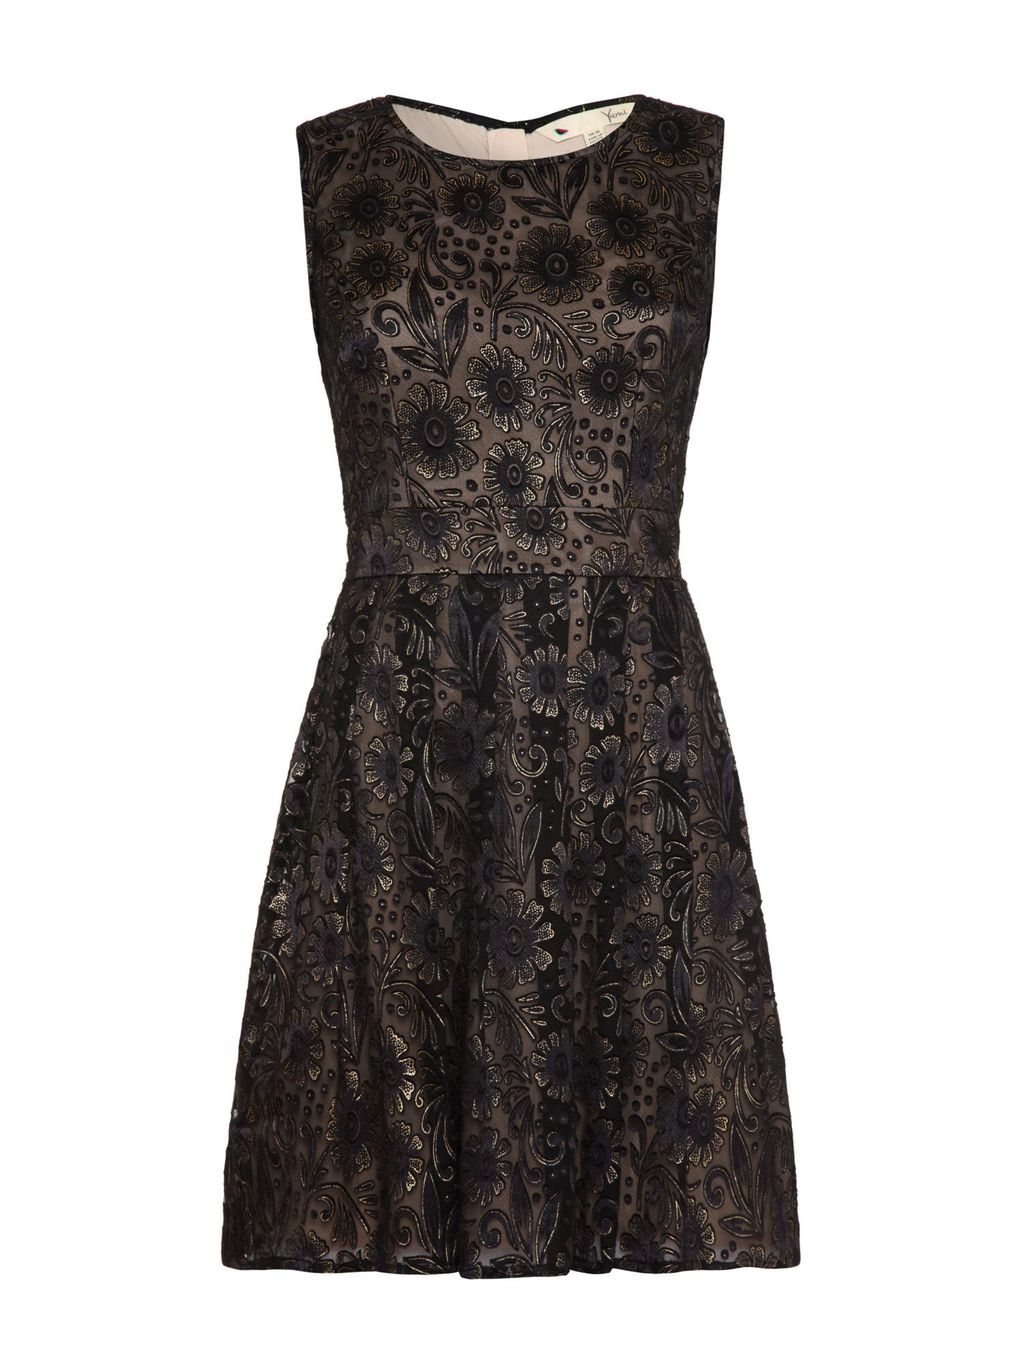 Embroidered Floral Occasion Dress, Black - style: shift; sleeve style: sleeveless; secondary colour: nude; predominant colour: black; occasions: evening, occasion; length: just above the knee; fit: fitted at waist & bust; fibres: polyester/polyamide - stretch; neckline: crew; hip detail: soft pleats at hip/draping at hip/flared at hip; sleeve length: sleeveless; texture group: lace; pattern type: fabric; pattern: patterned/print; embellishment: lace; season: a/w 2015